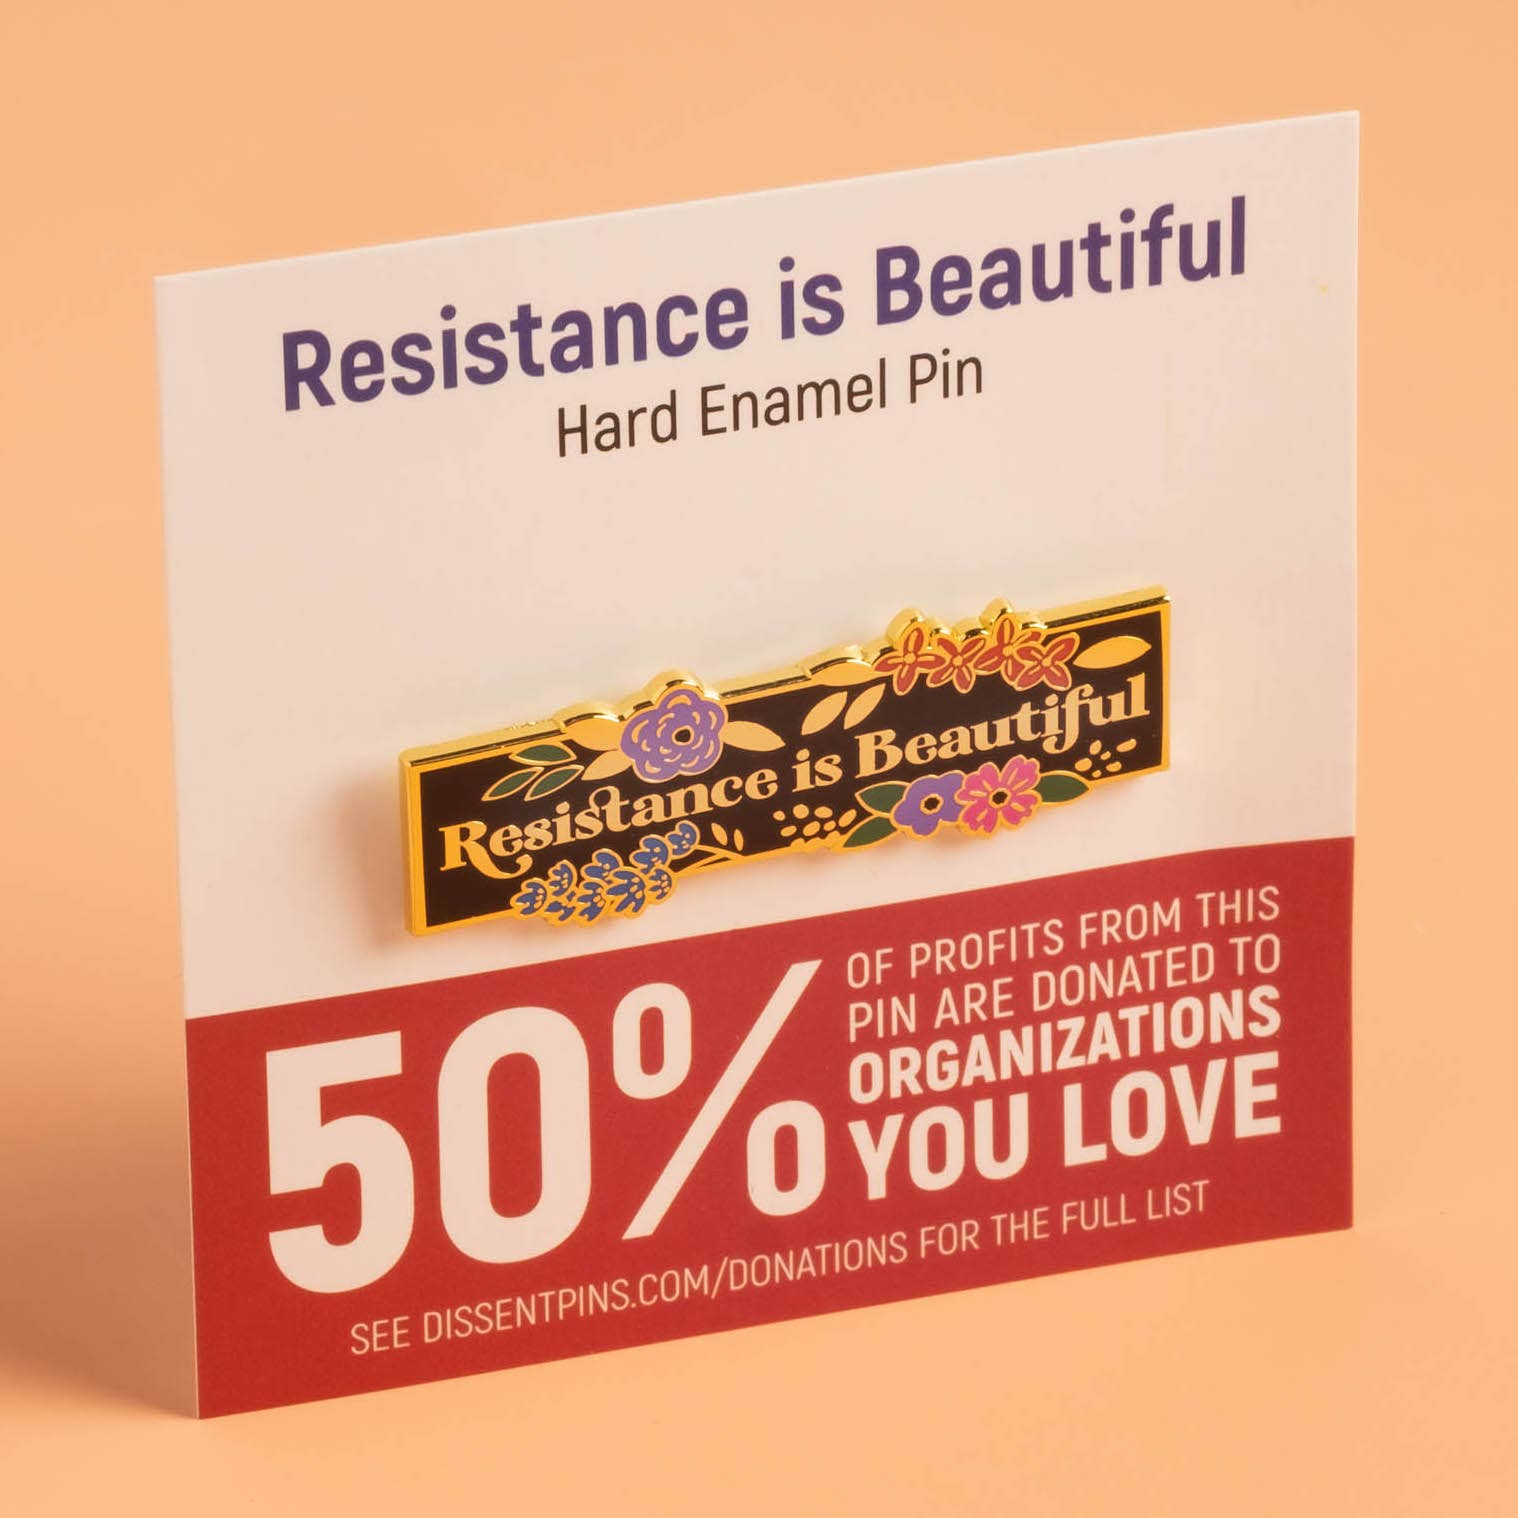 Resistance is Beautiful Pin